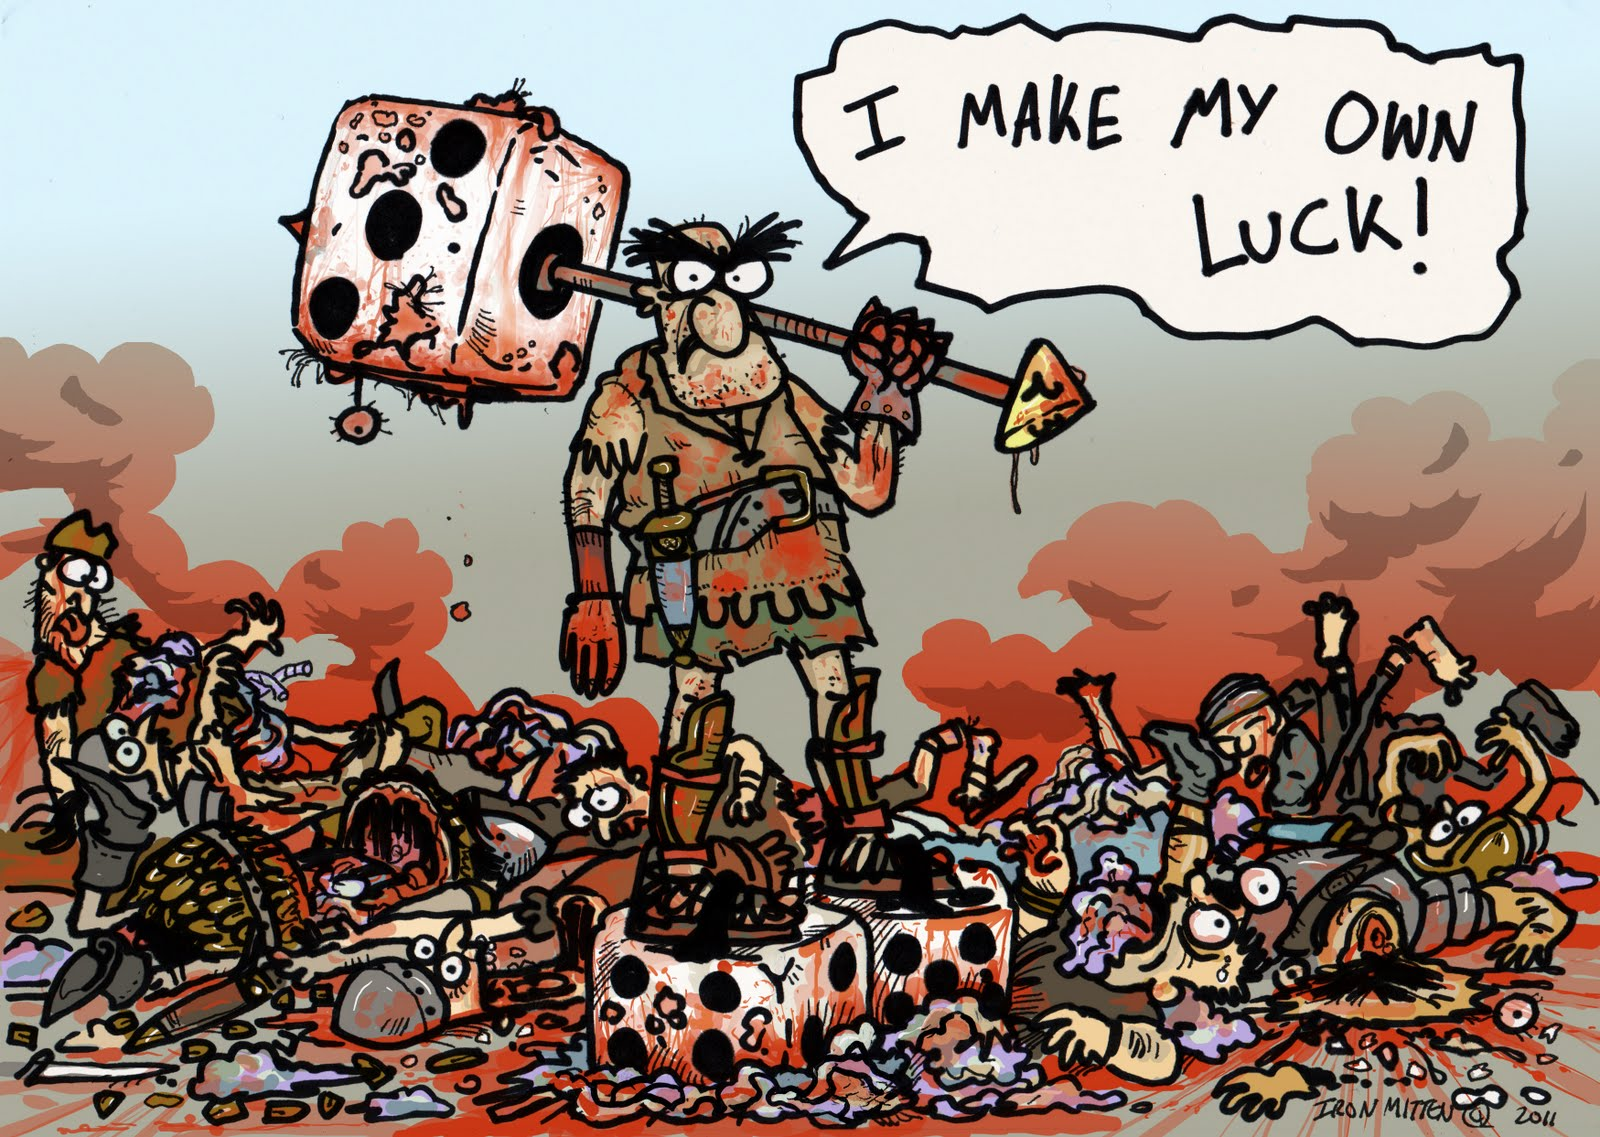 lucky-dice-by-iron-mitten.jpg